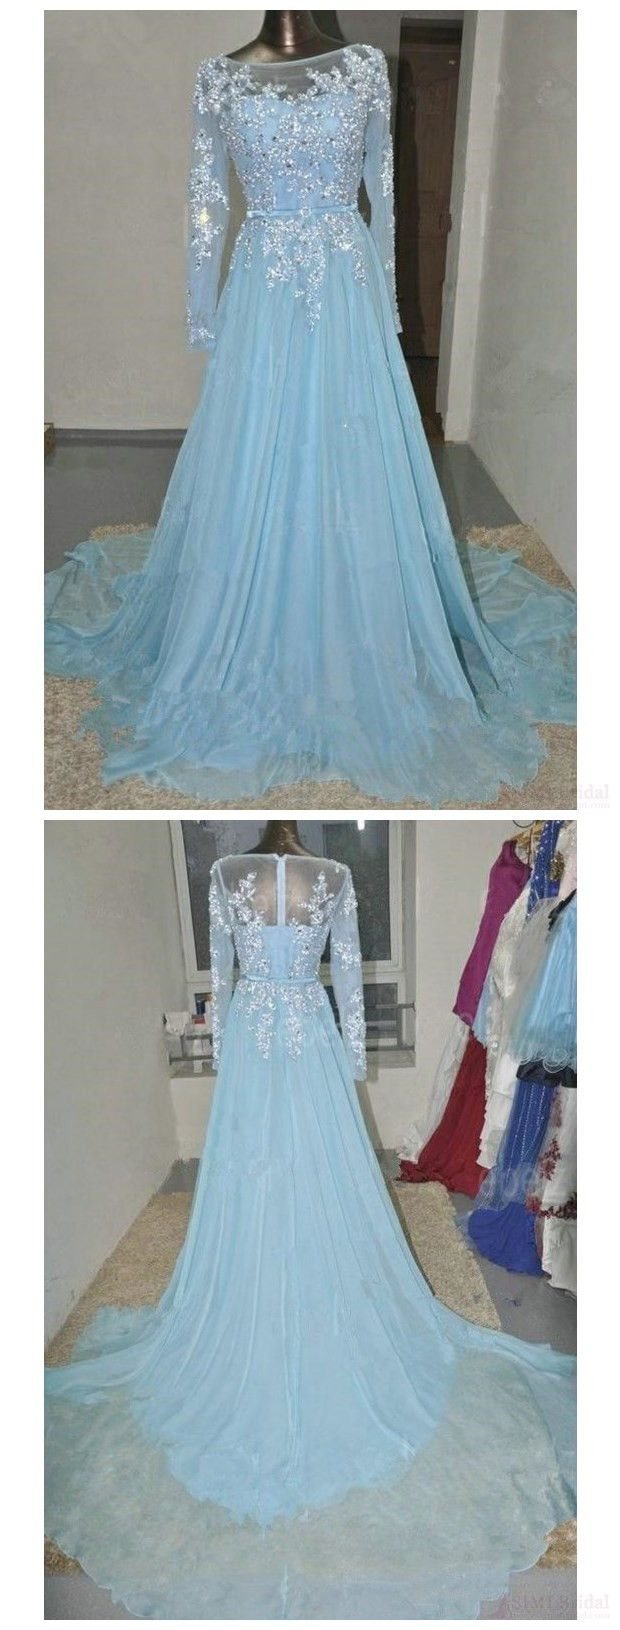 long sleeve prom dresses,applique prom dress,prom,new prom dresses,#promdresses #simibridal